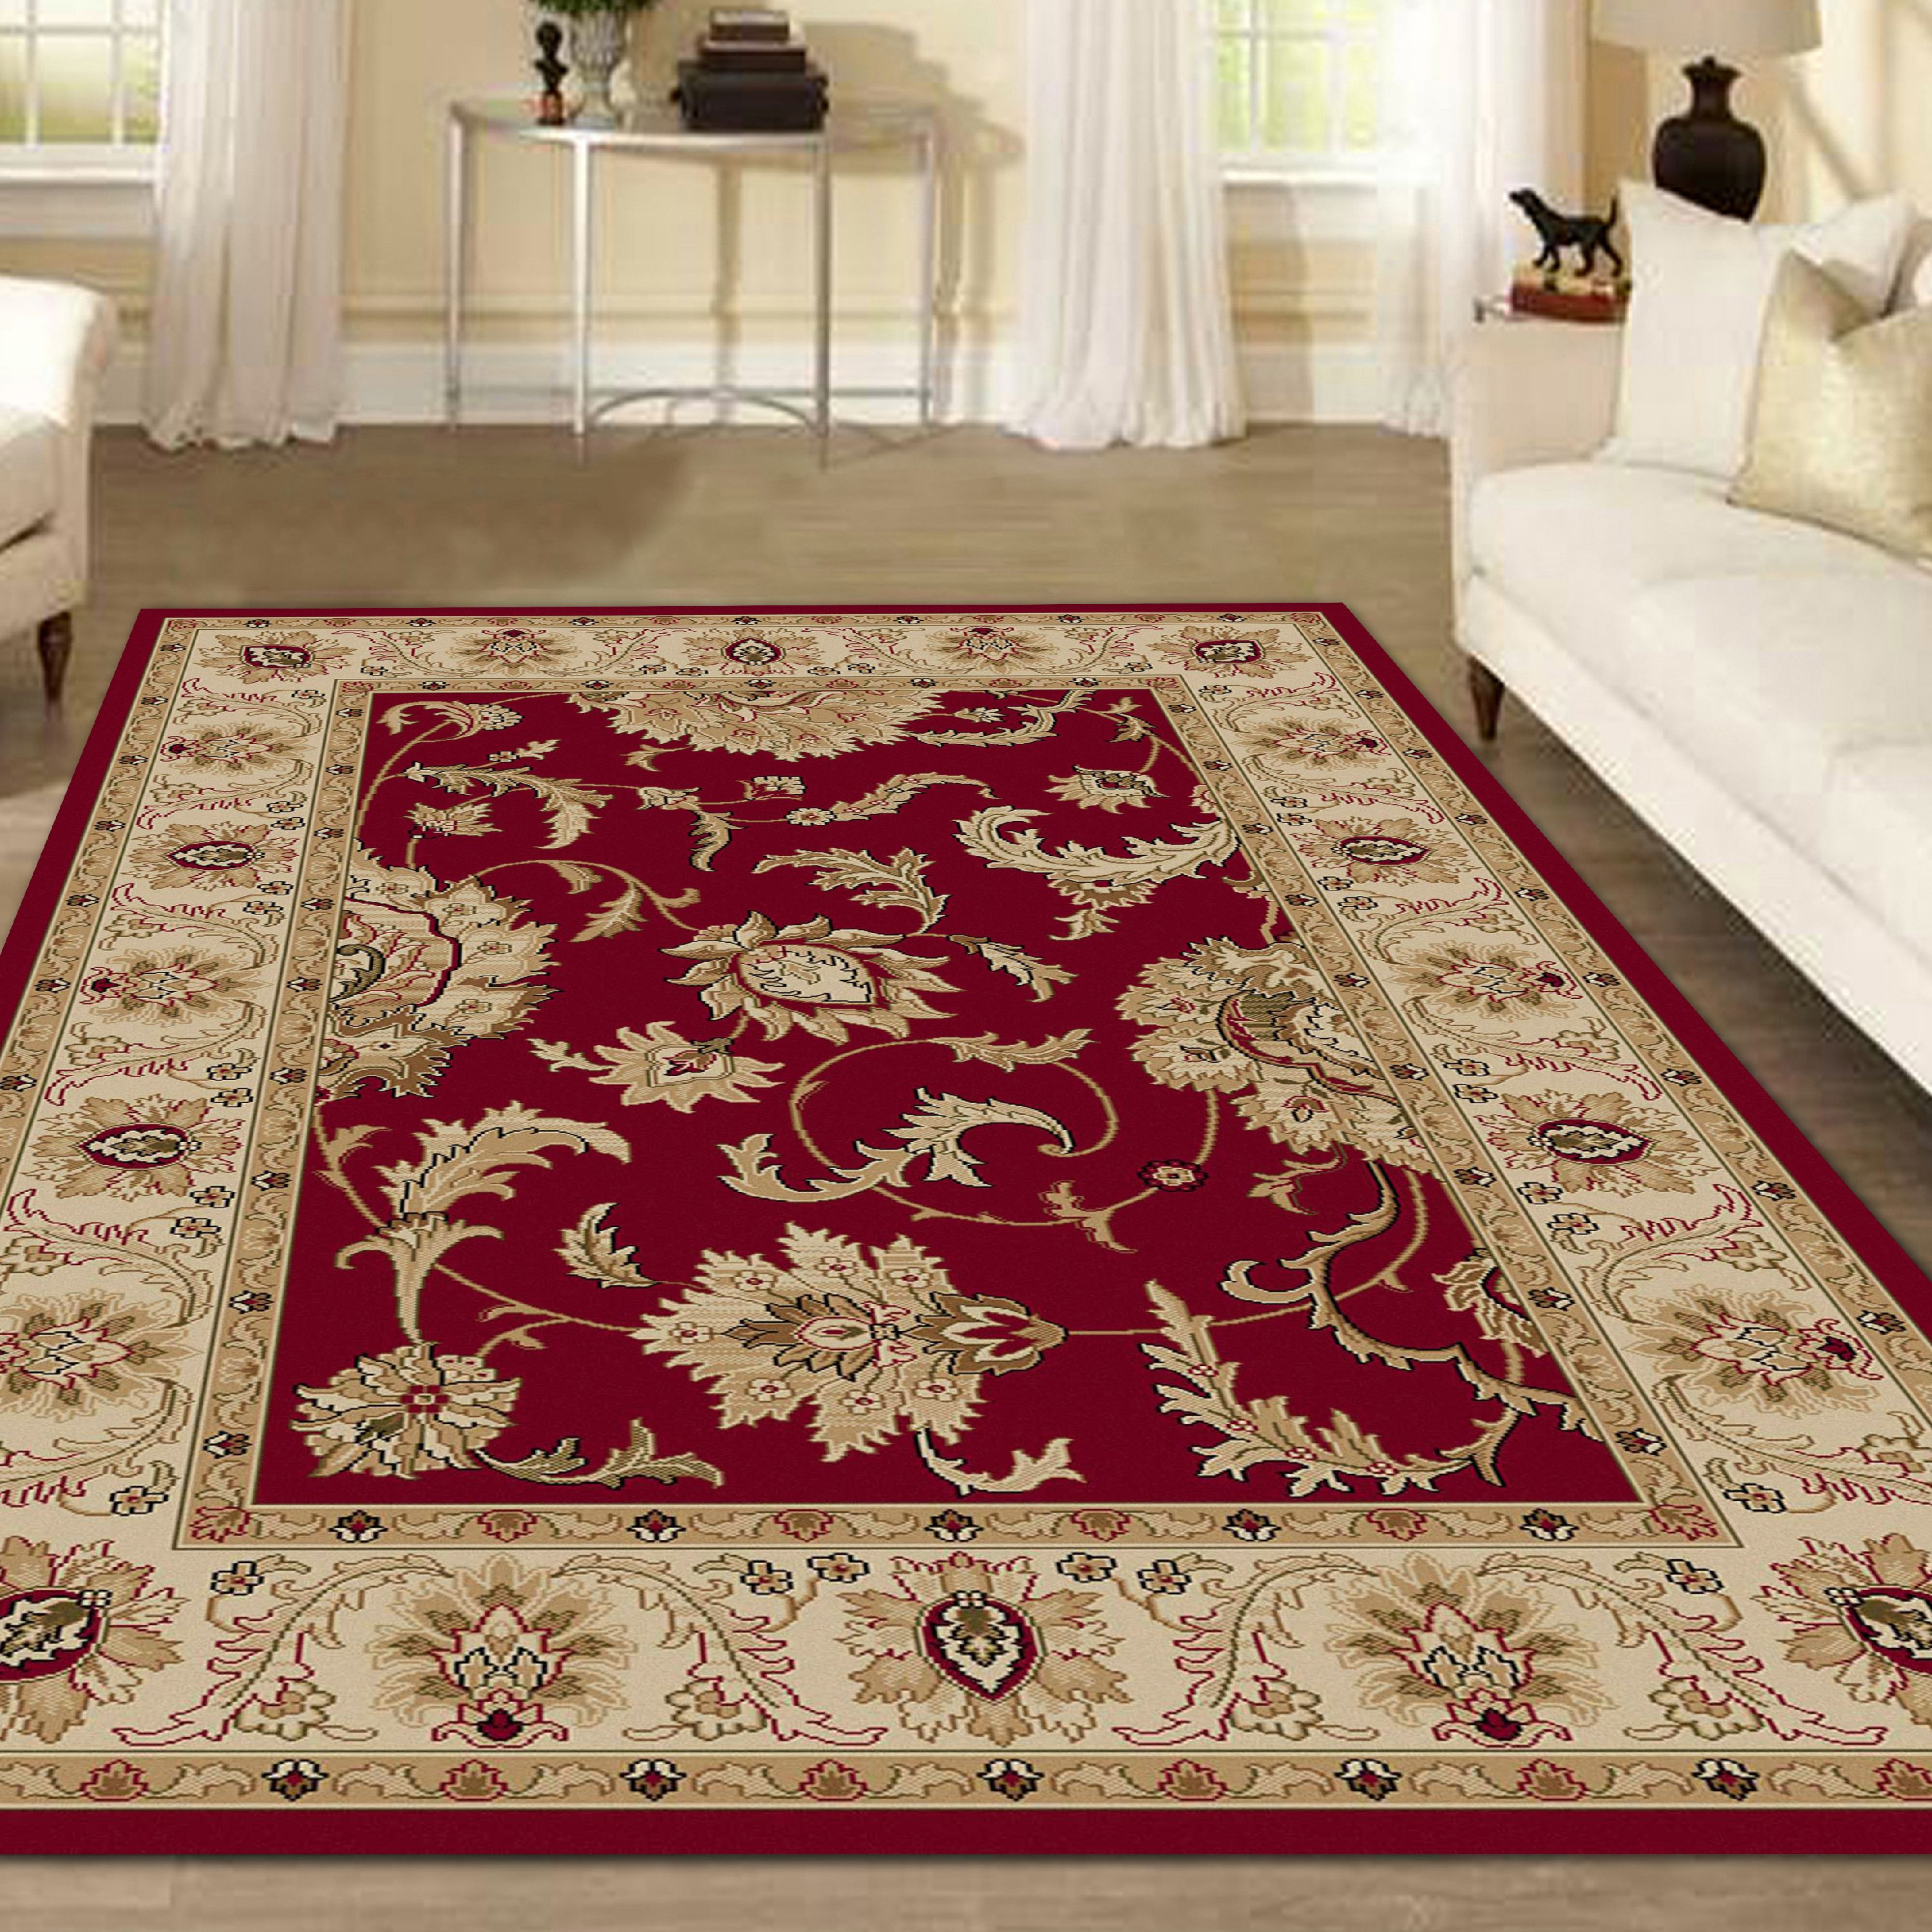 Radici USA Como 1621 Area Rug - Red